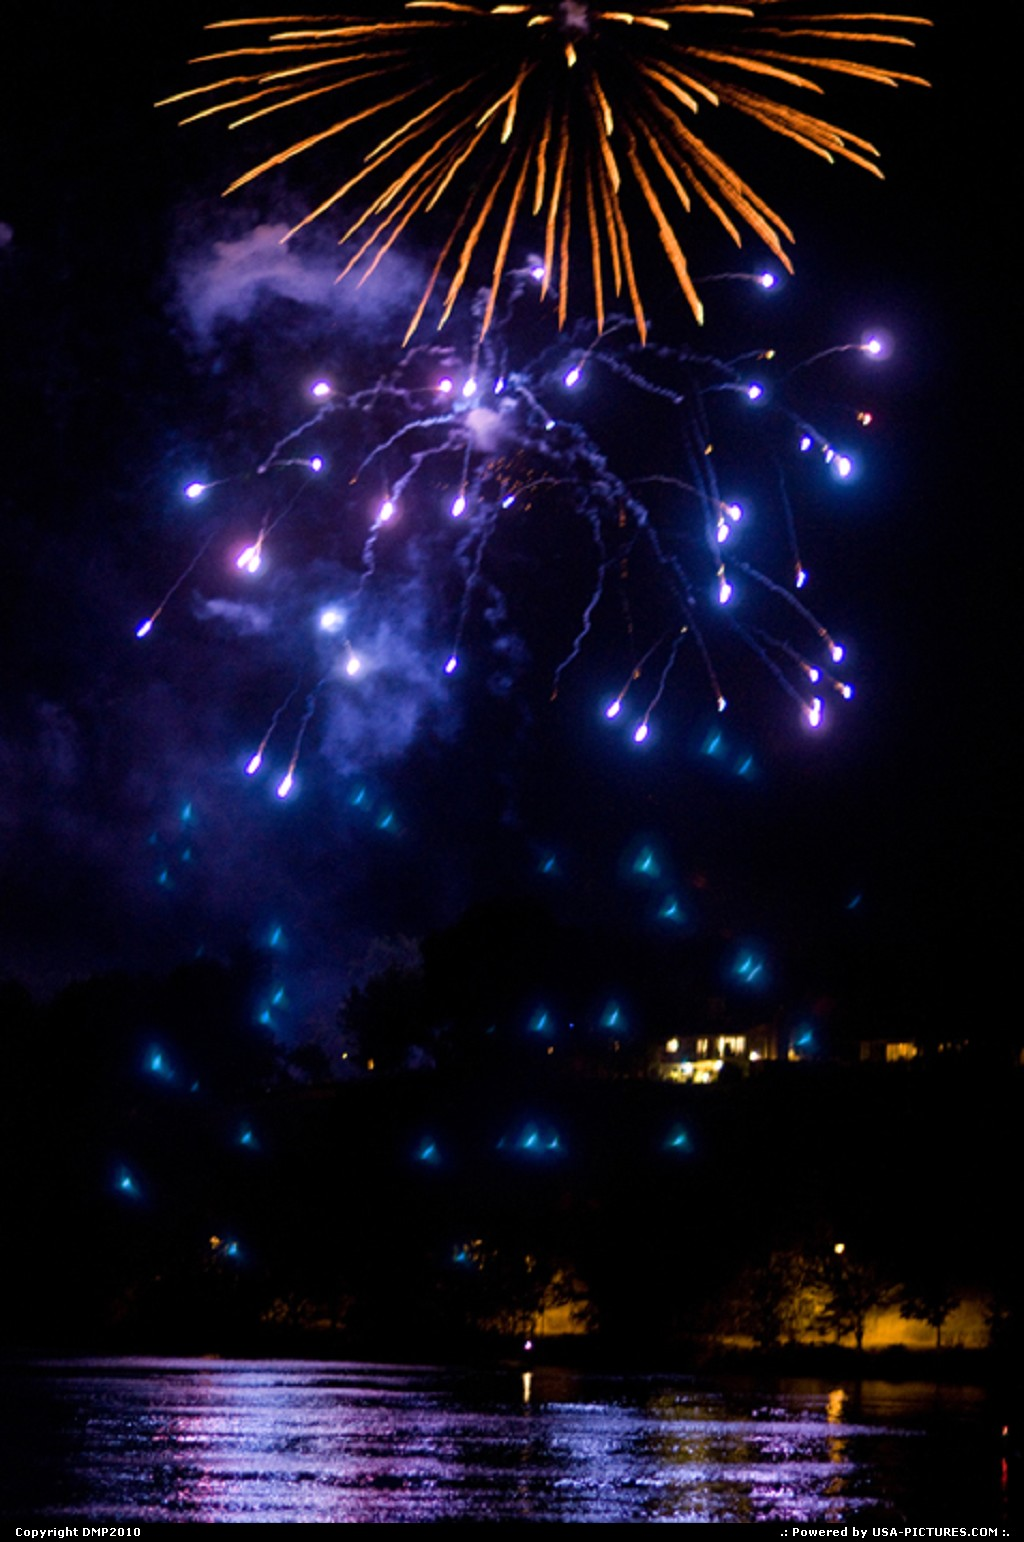 Picture by DMP2010:LewistonIdaholights,fireworks,river,idaho,colorful,sky